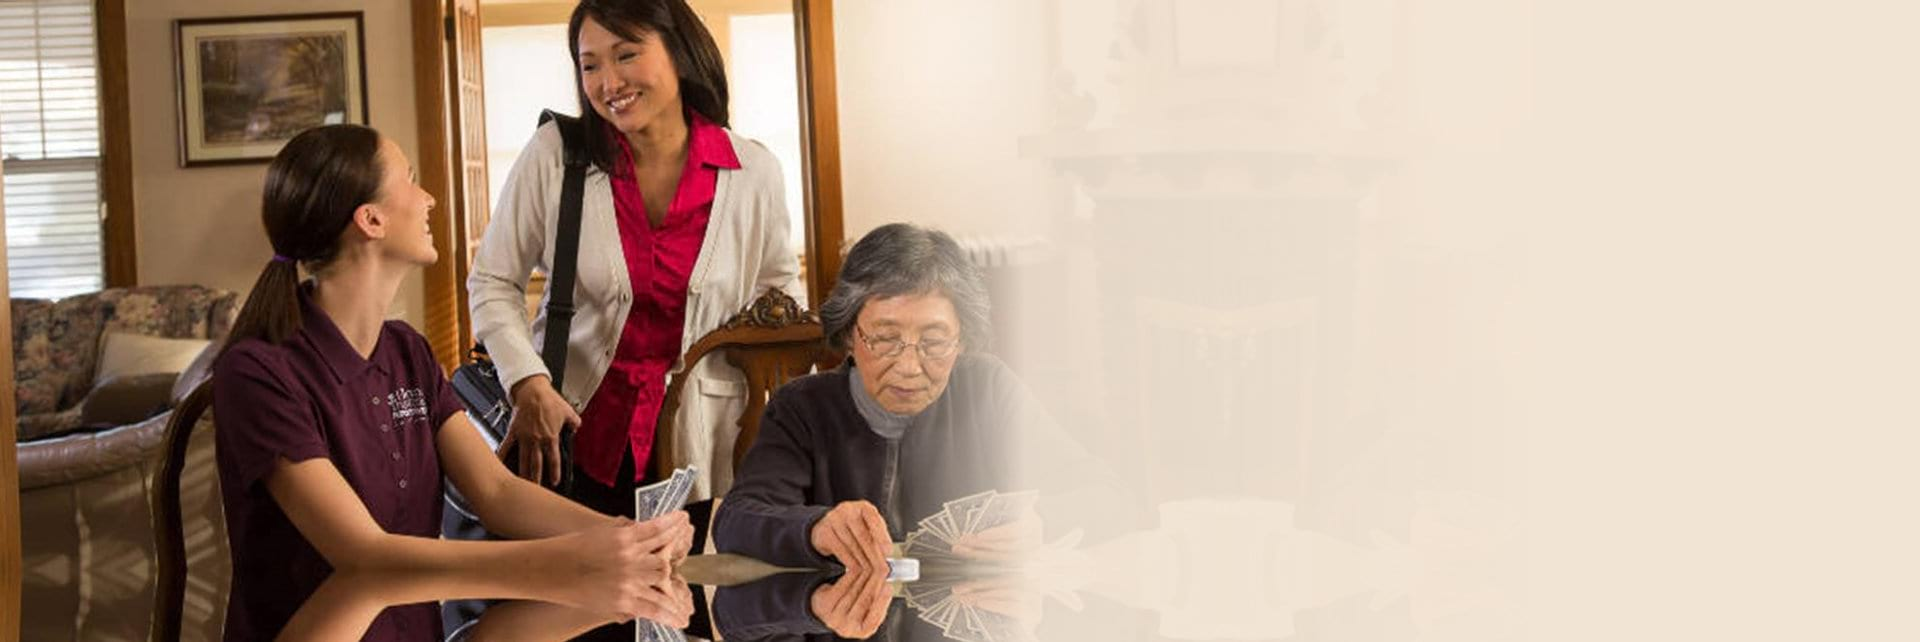 Elder woman playing cards and two women talking